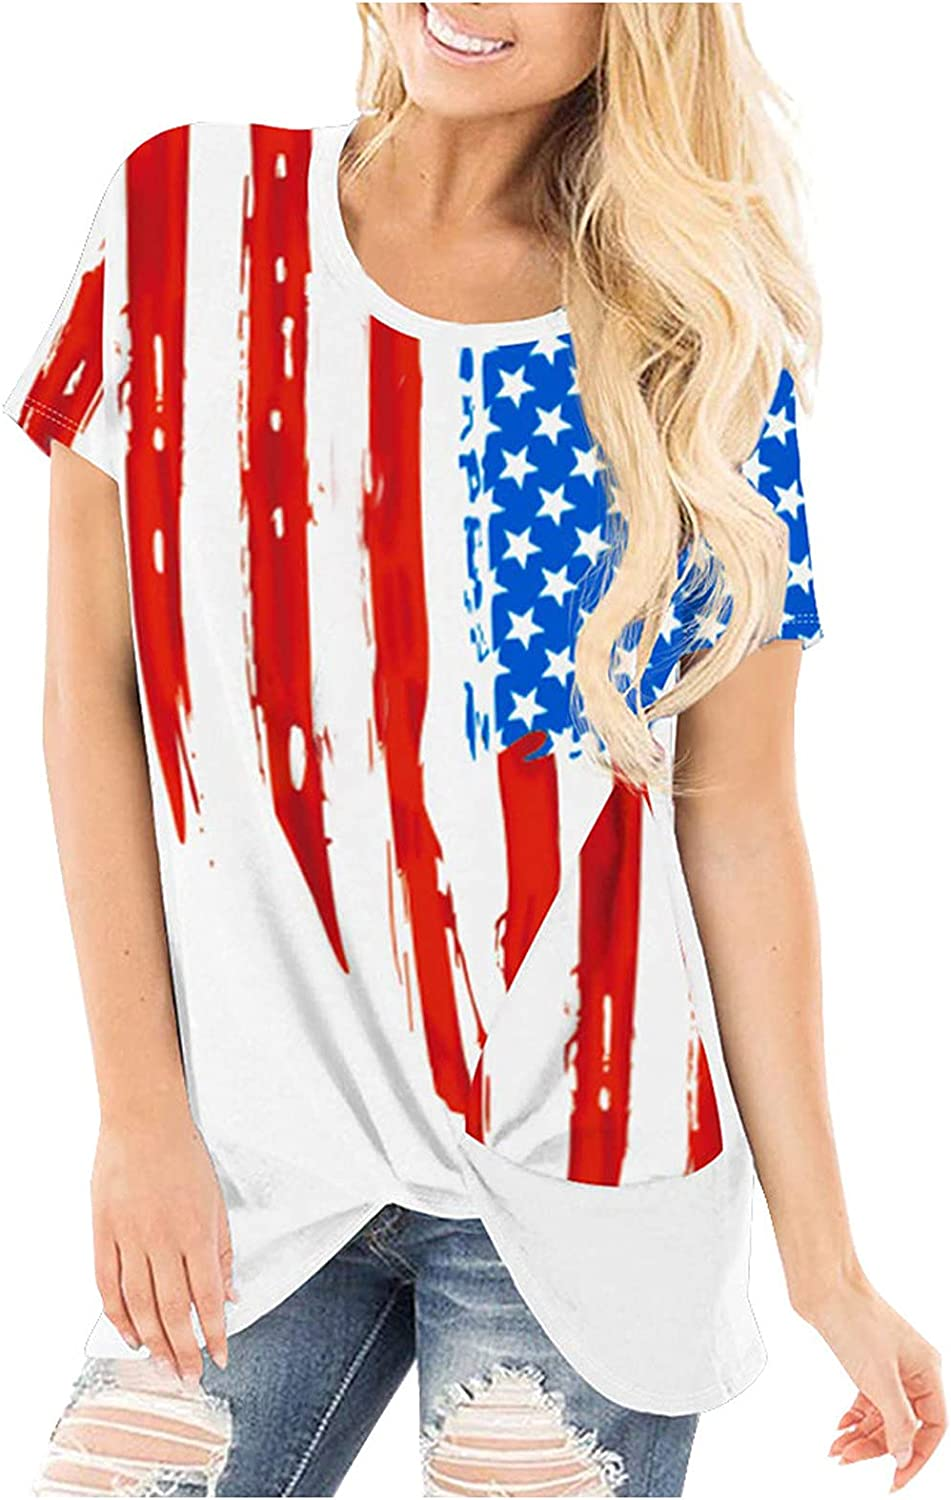 Sayhi Fashion Women Basic Tee Casual Shirts O-Neck Independence Day Printed Short Sleeve Tops Casual Pullover